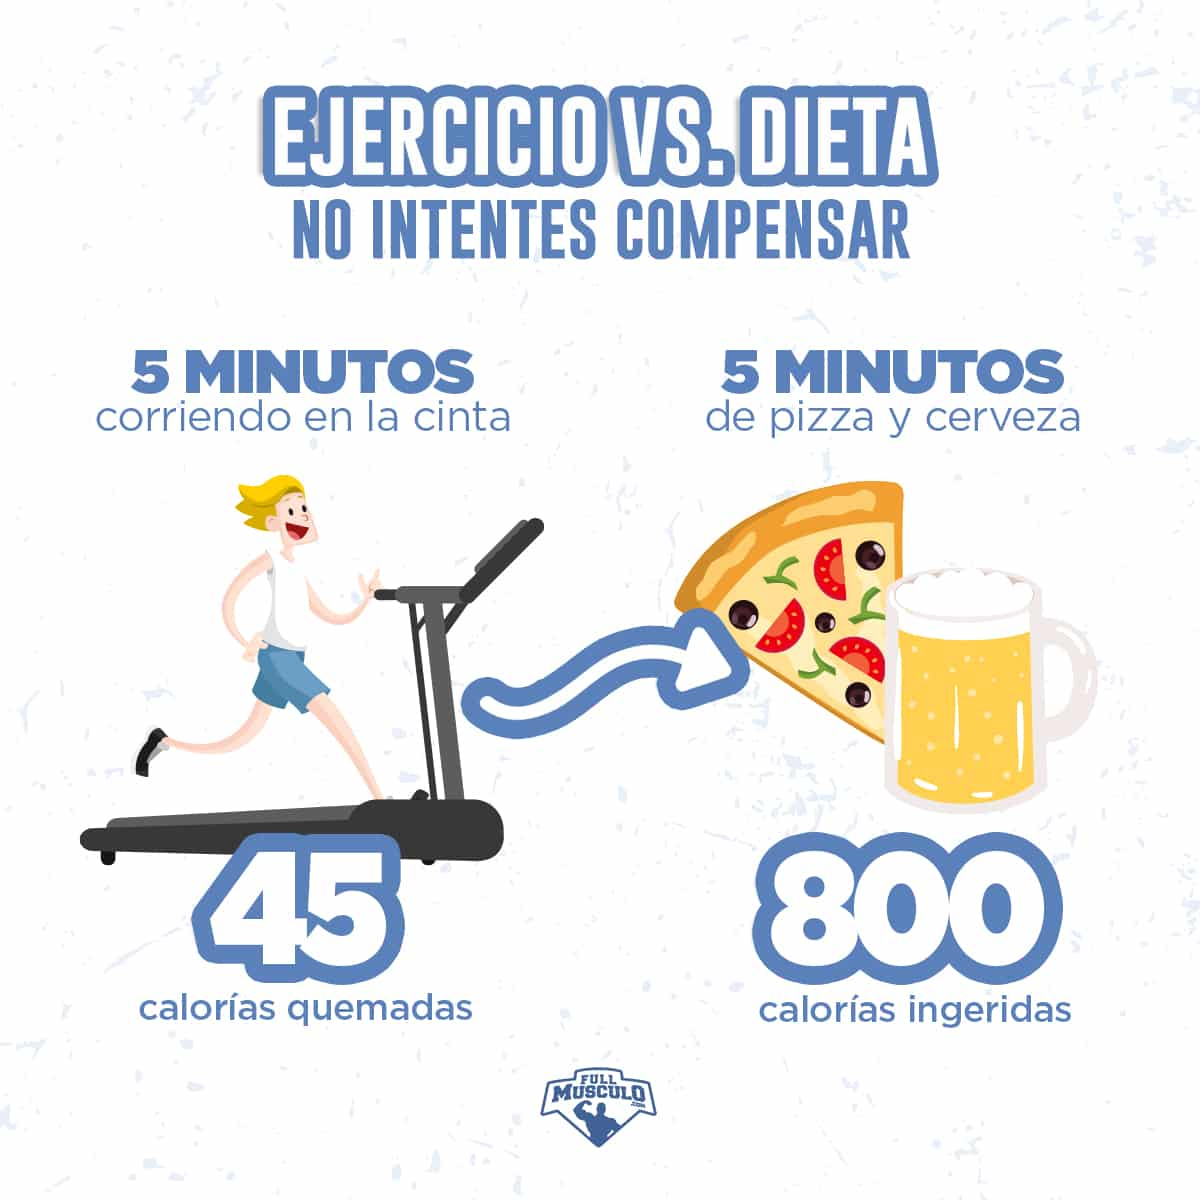 ejercicio vs dieta no intentes compensar